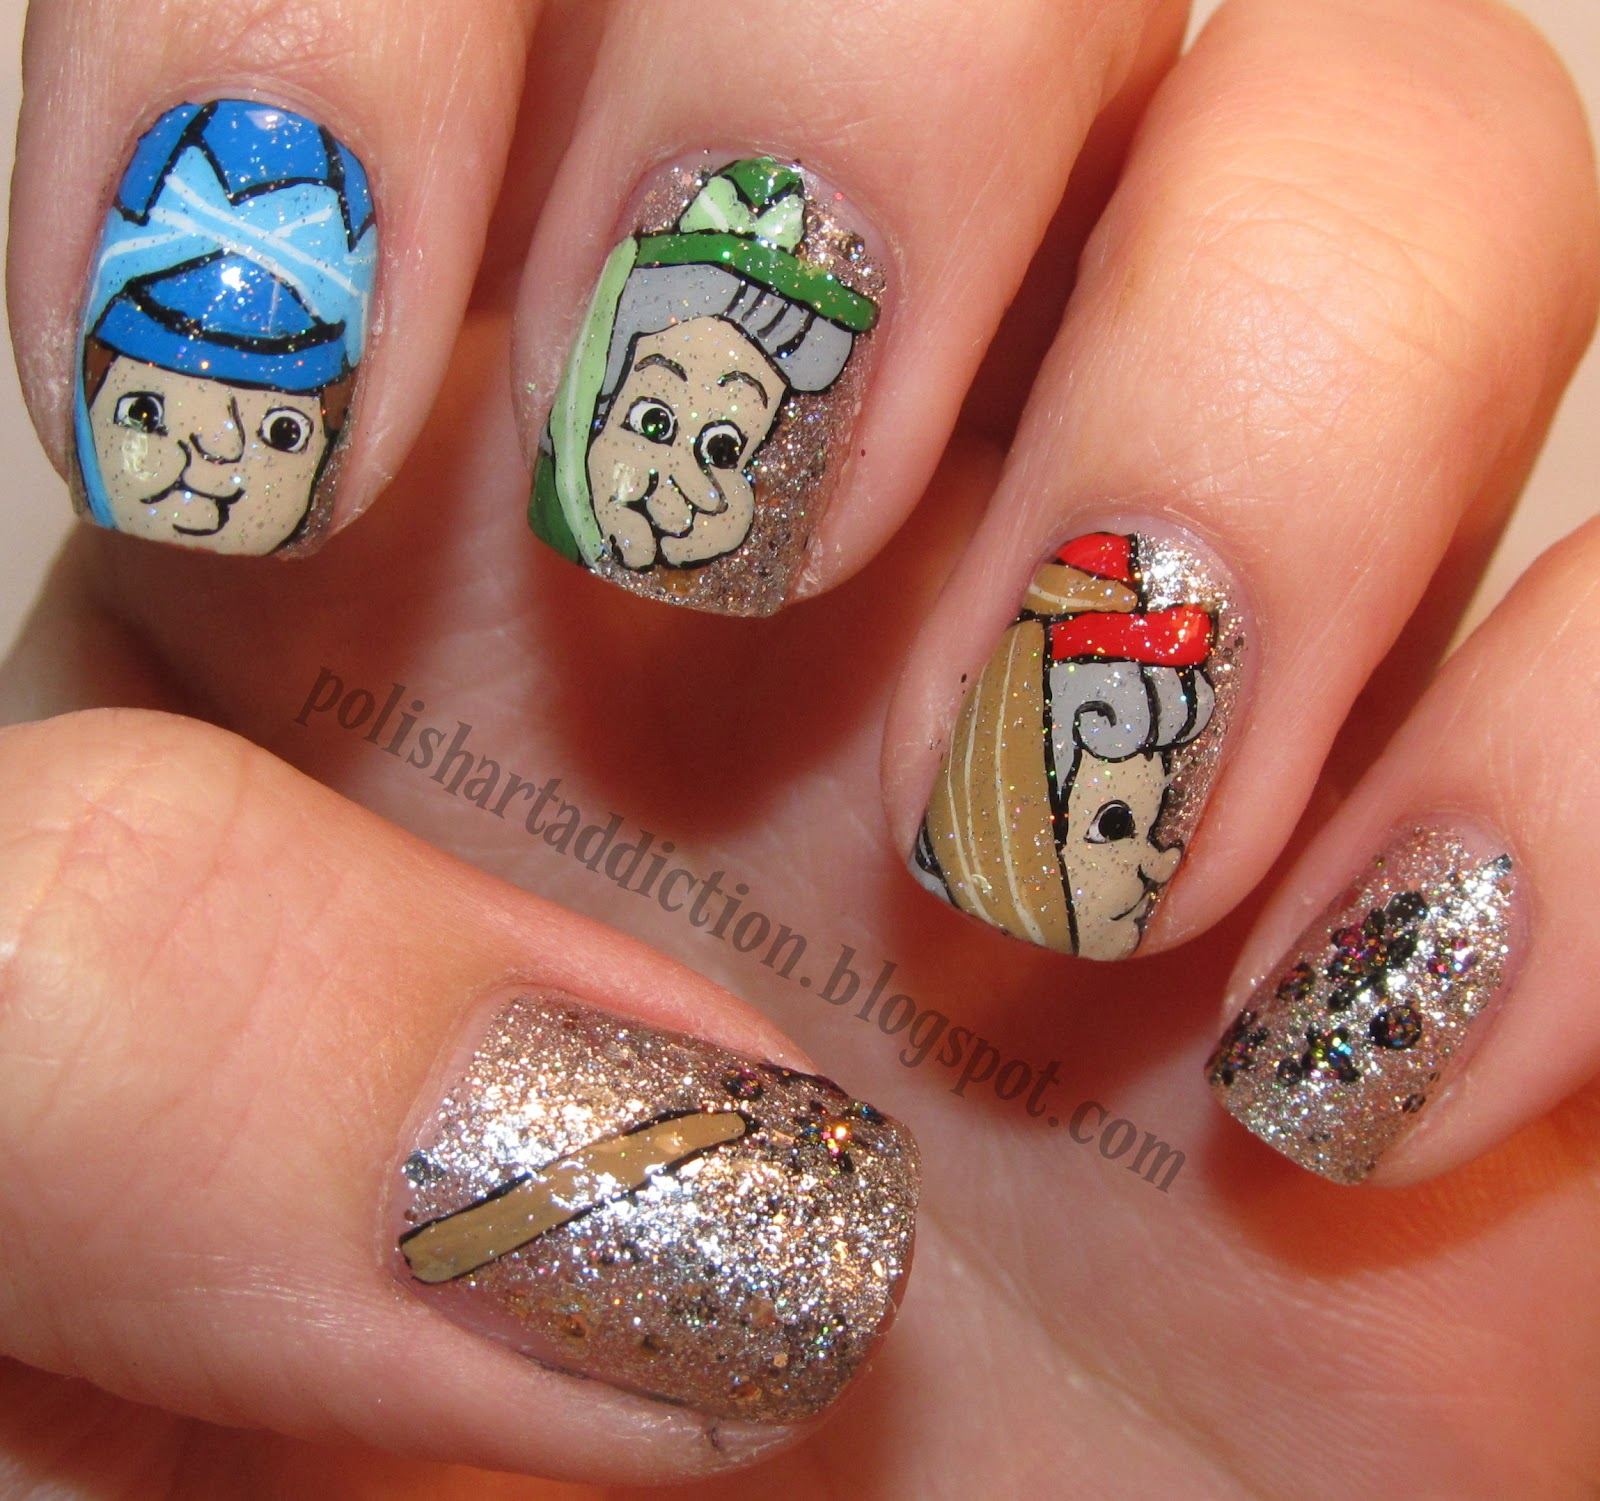 Sleeping Beauty Nail Art: In The Sunlight They Really Sparkle